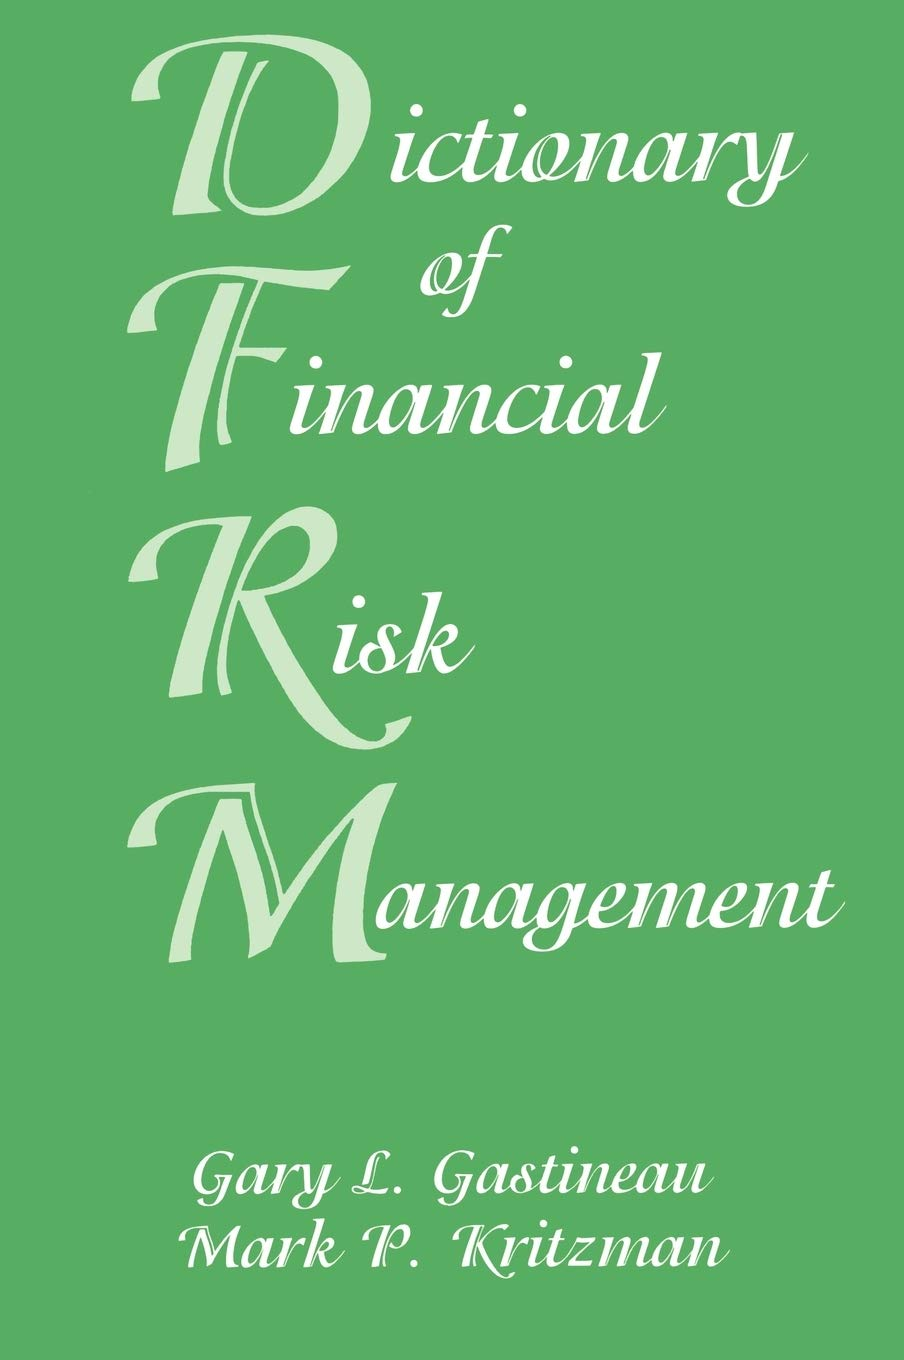 Image OfDictionary Of Financial Risk Management, Third Edition